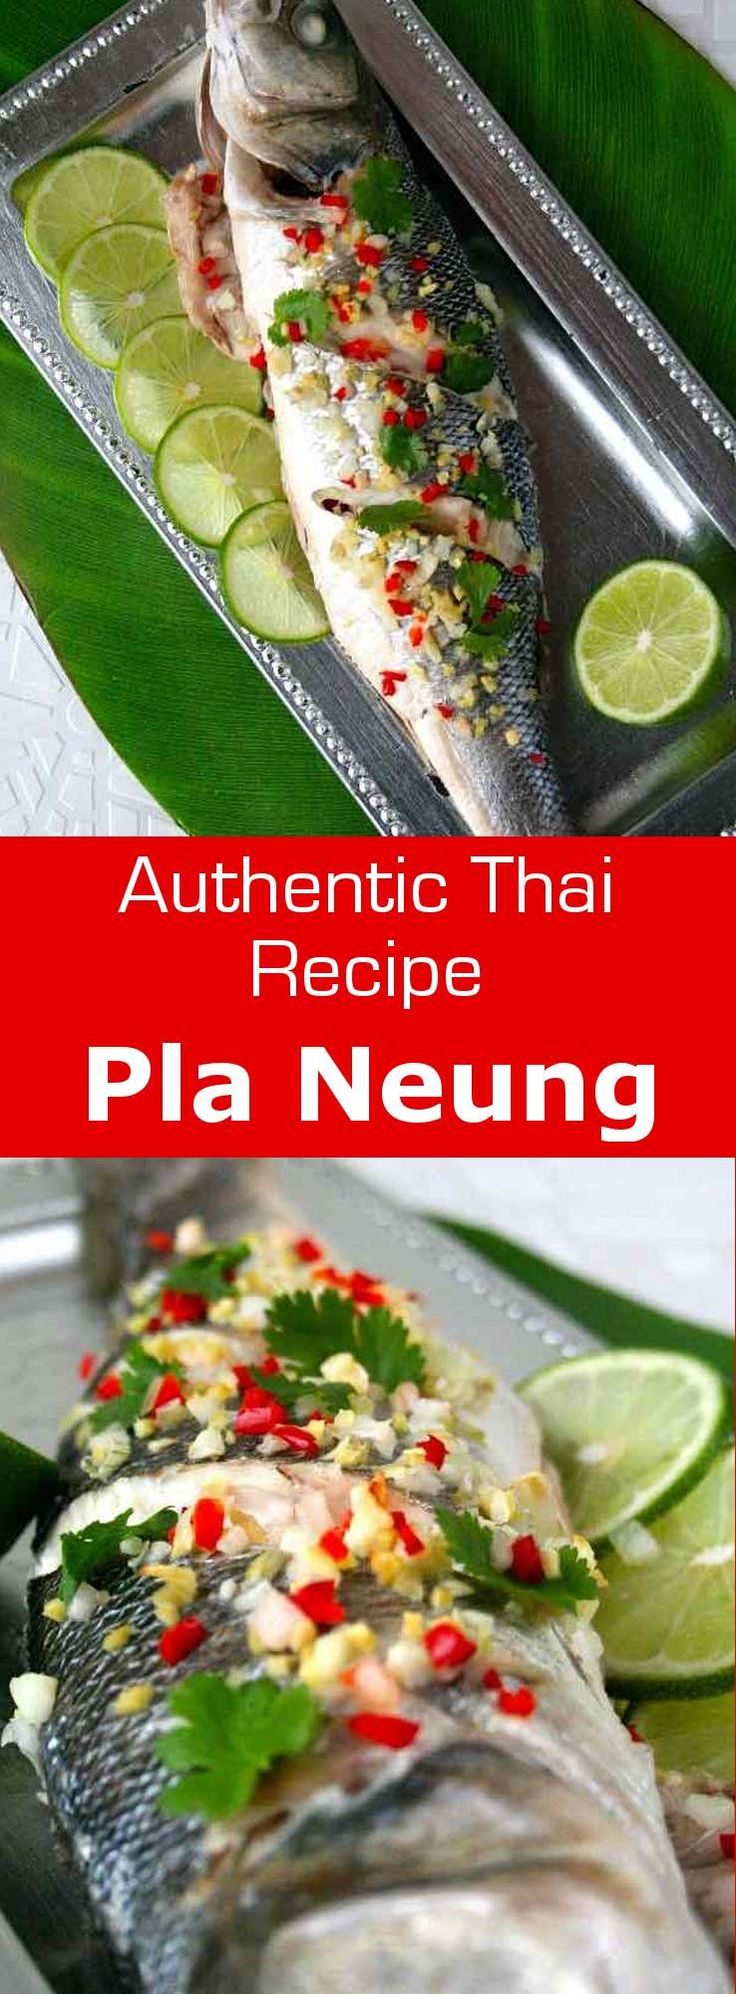 Pla neung or bplah neung is a very simple thai recipe, which emphasizes the delicate flavor of the fish. #thailand #fish #196flavors